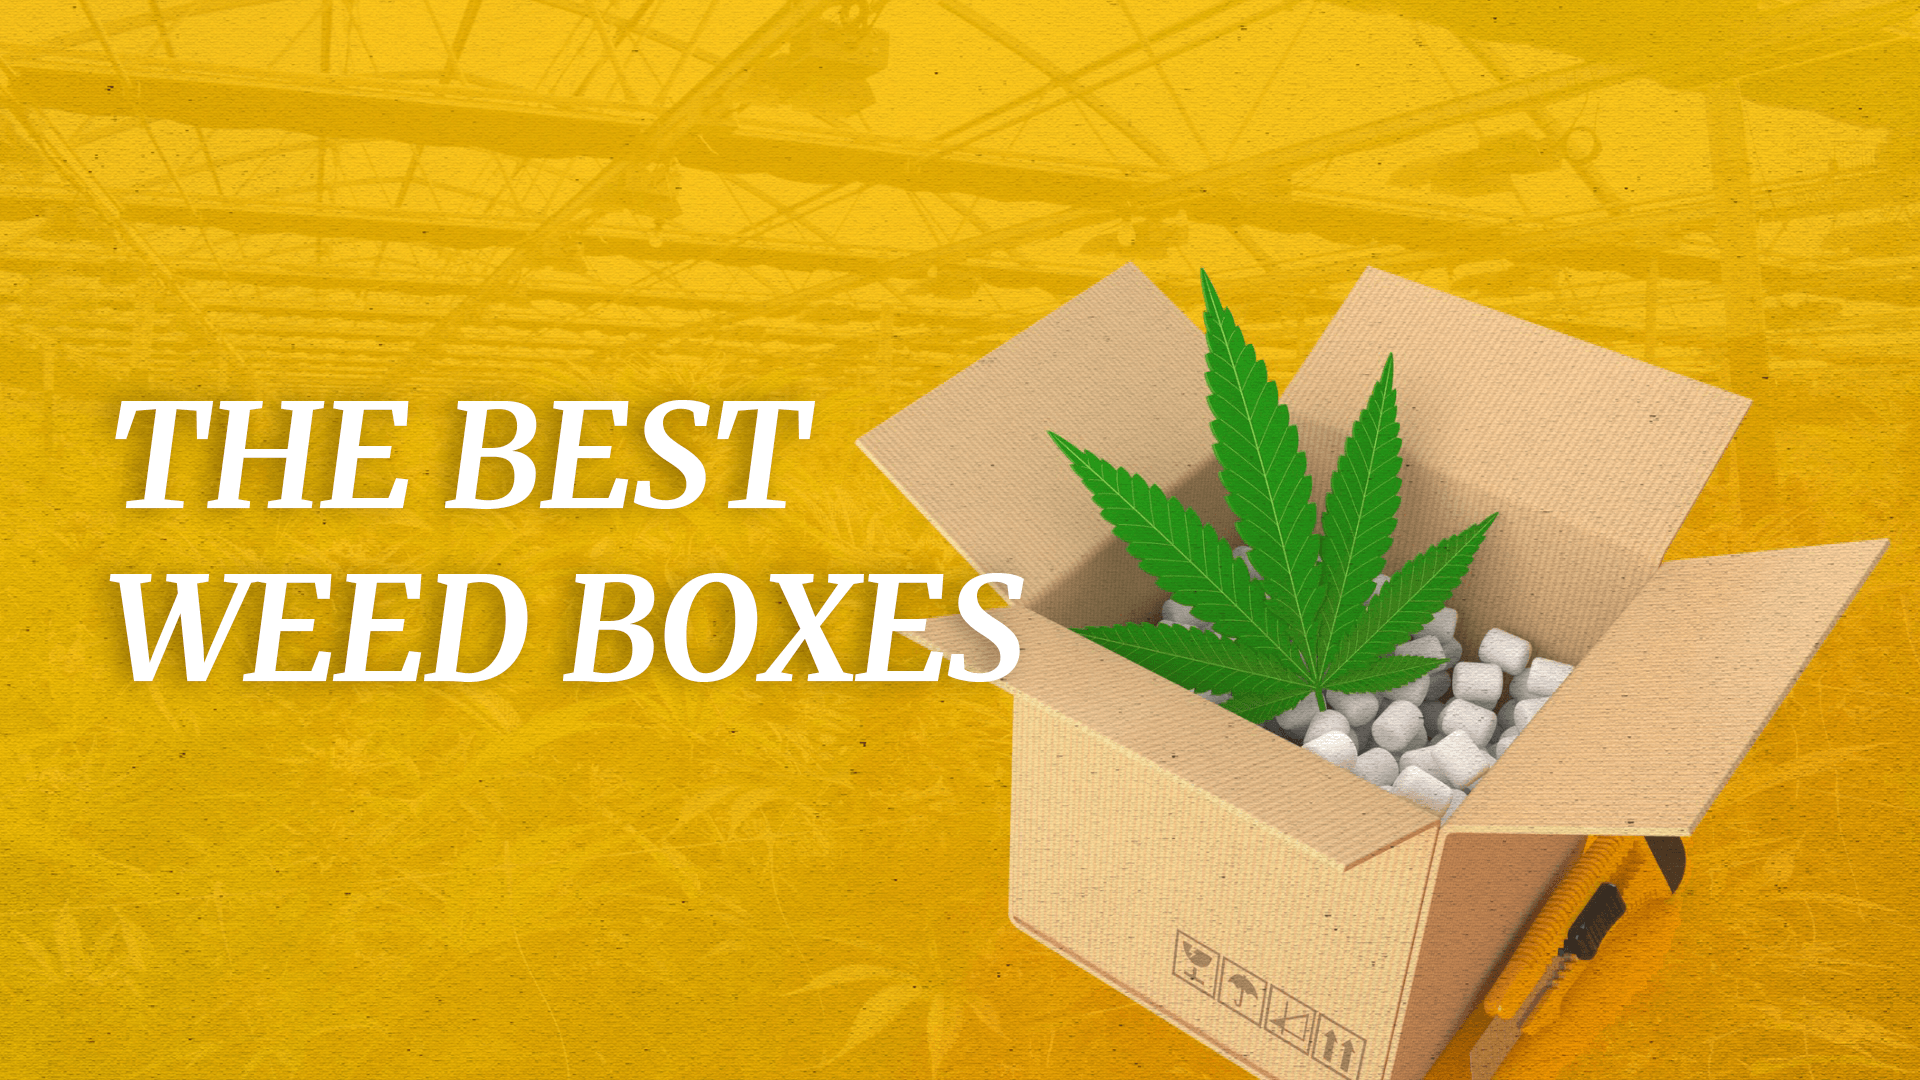 A cardboard box with weed in it with text that says